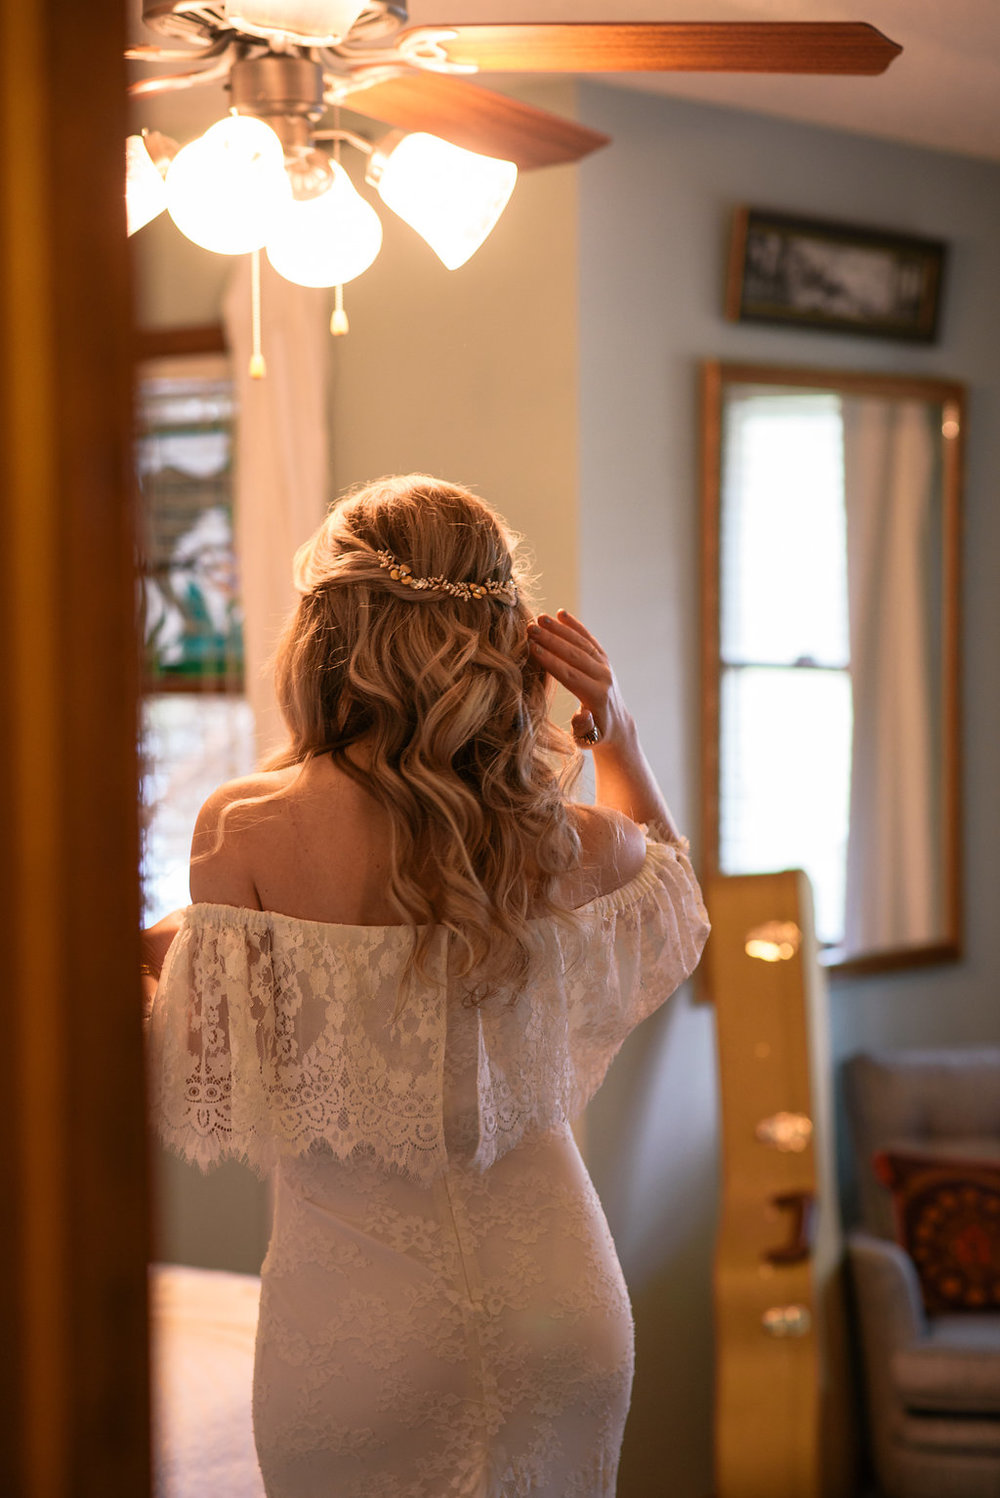 ivory-and-beau-bridal-boutique-meg-hill-photography-laurence-daughters-of-simone-boho-wedding-gown-douglas-ga-wedding-6.jpg